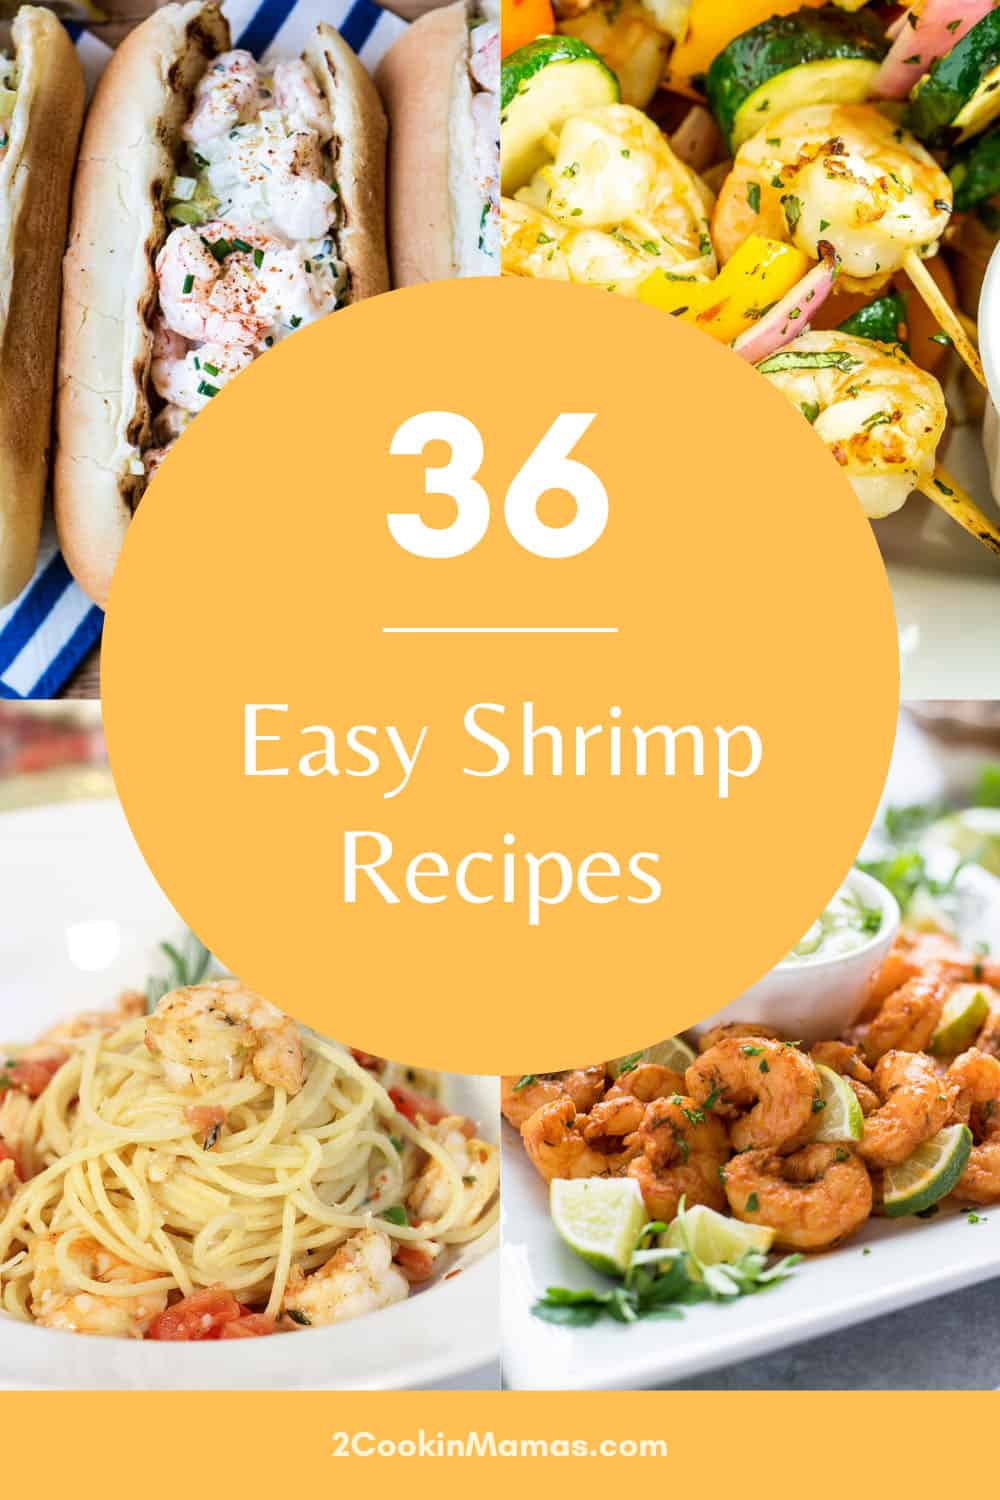 36 recipes for shrimp showing shrimp roll shrimp skewers rattlesnake pasta and fried.